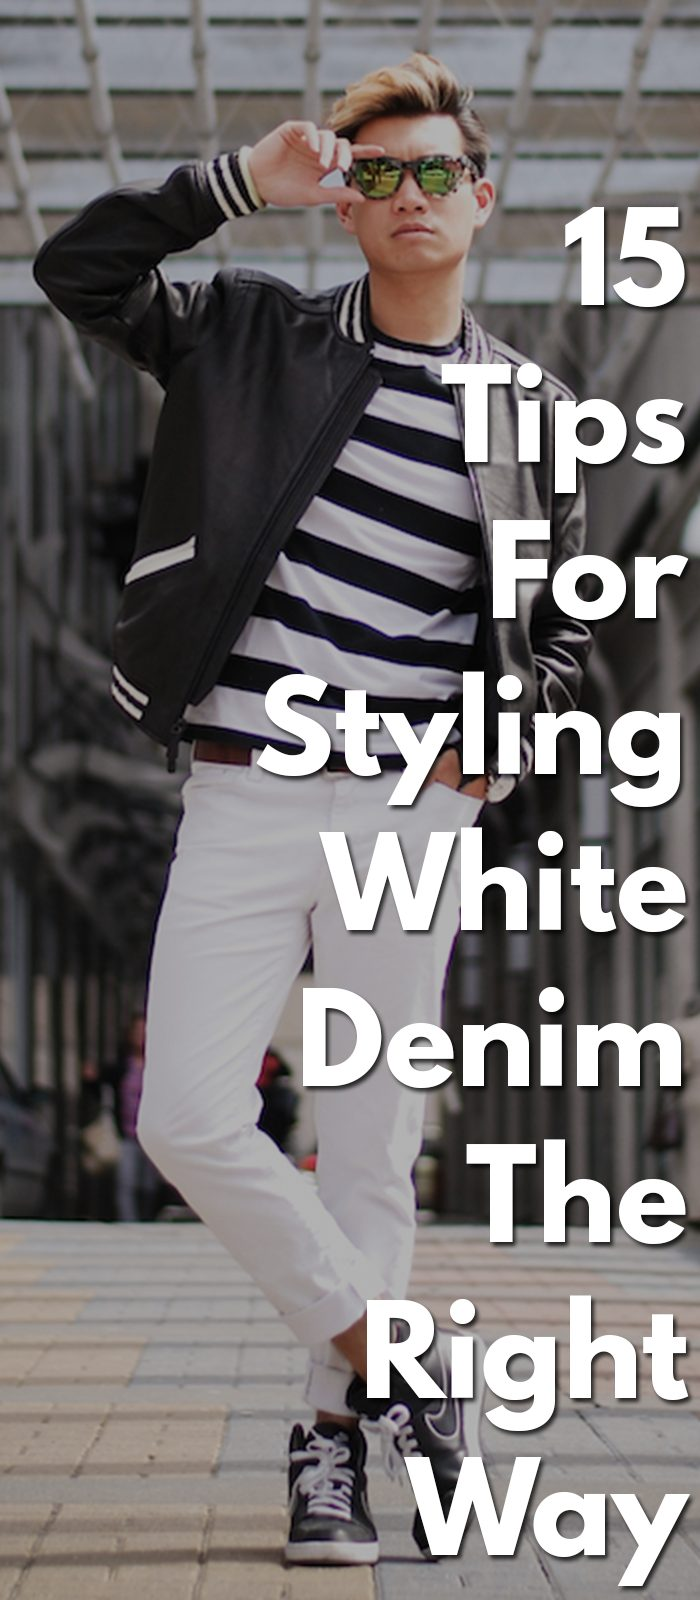 15-Tips-For-Styling-White-Denim-The-Right-Way